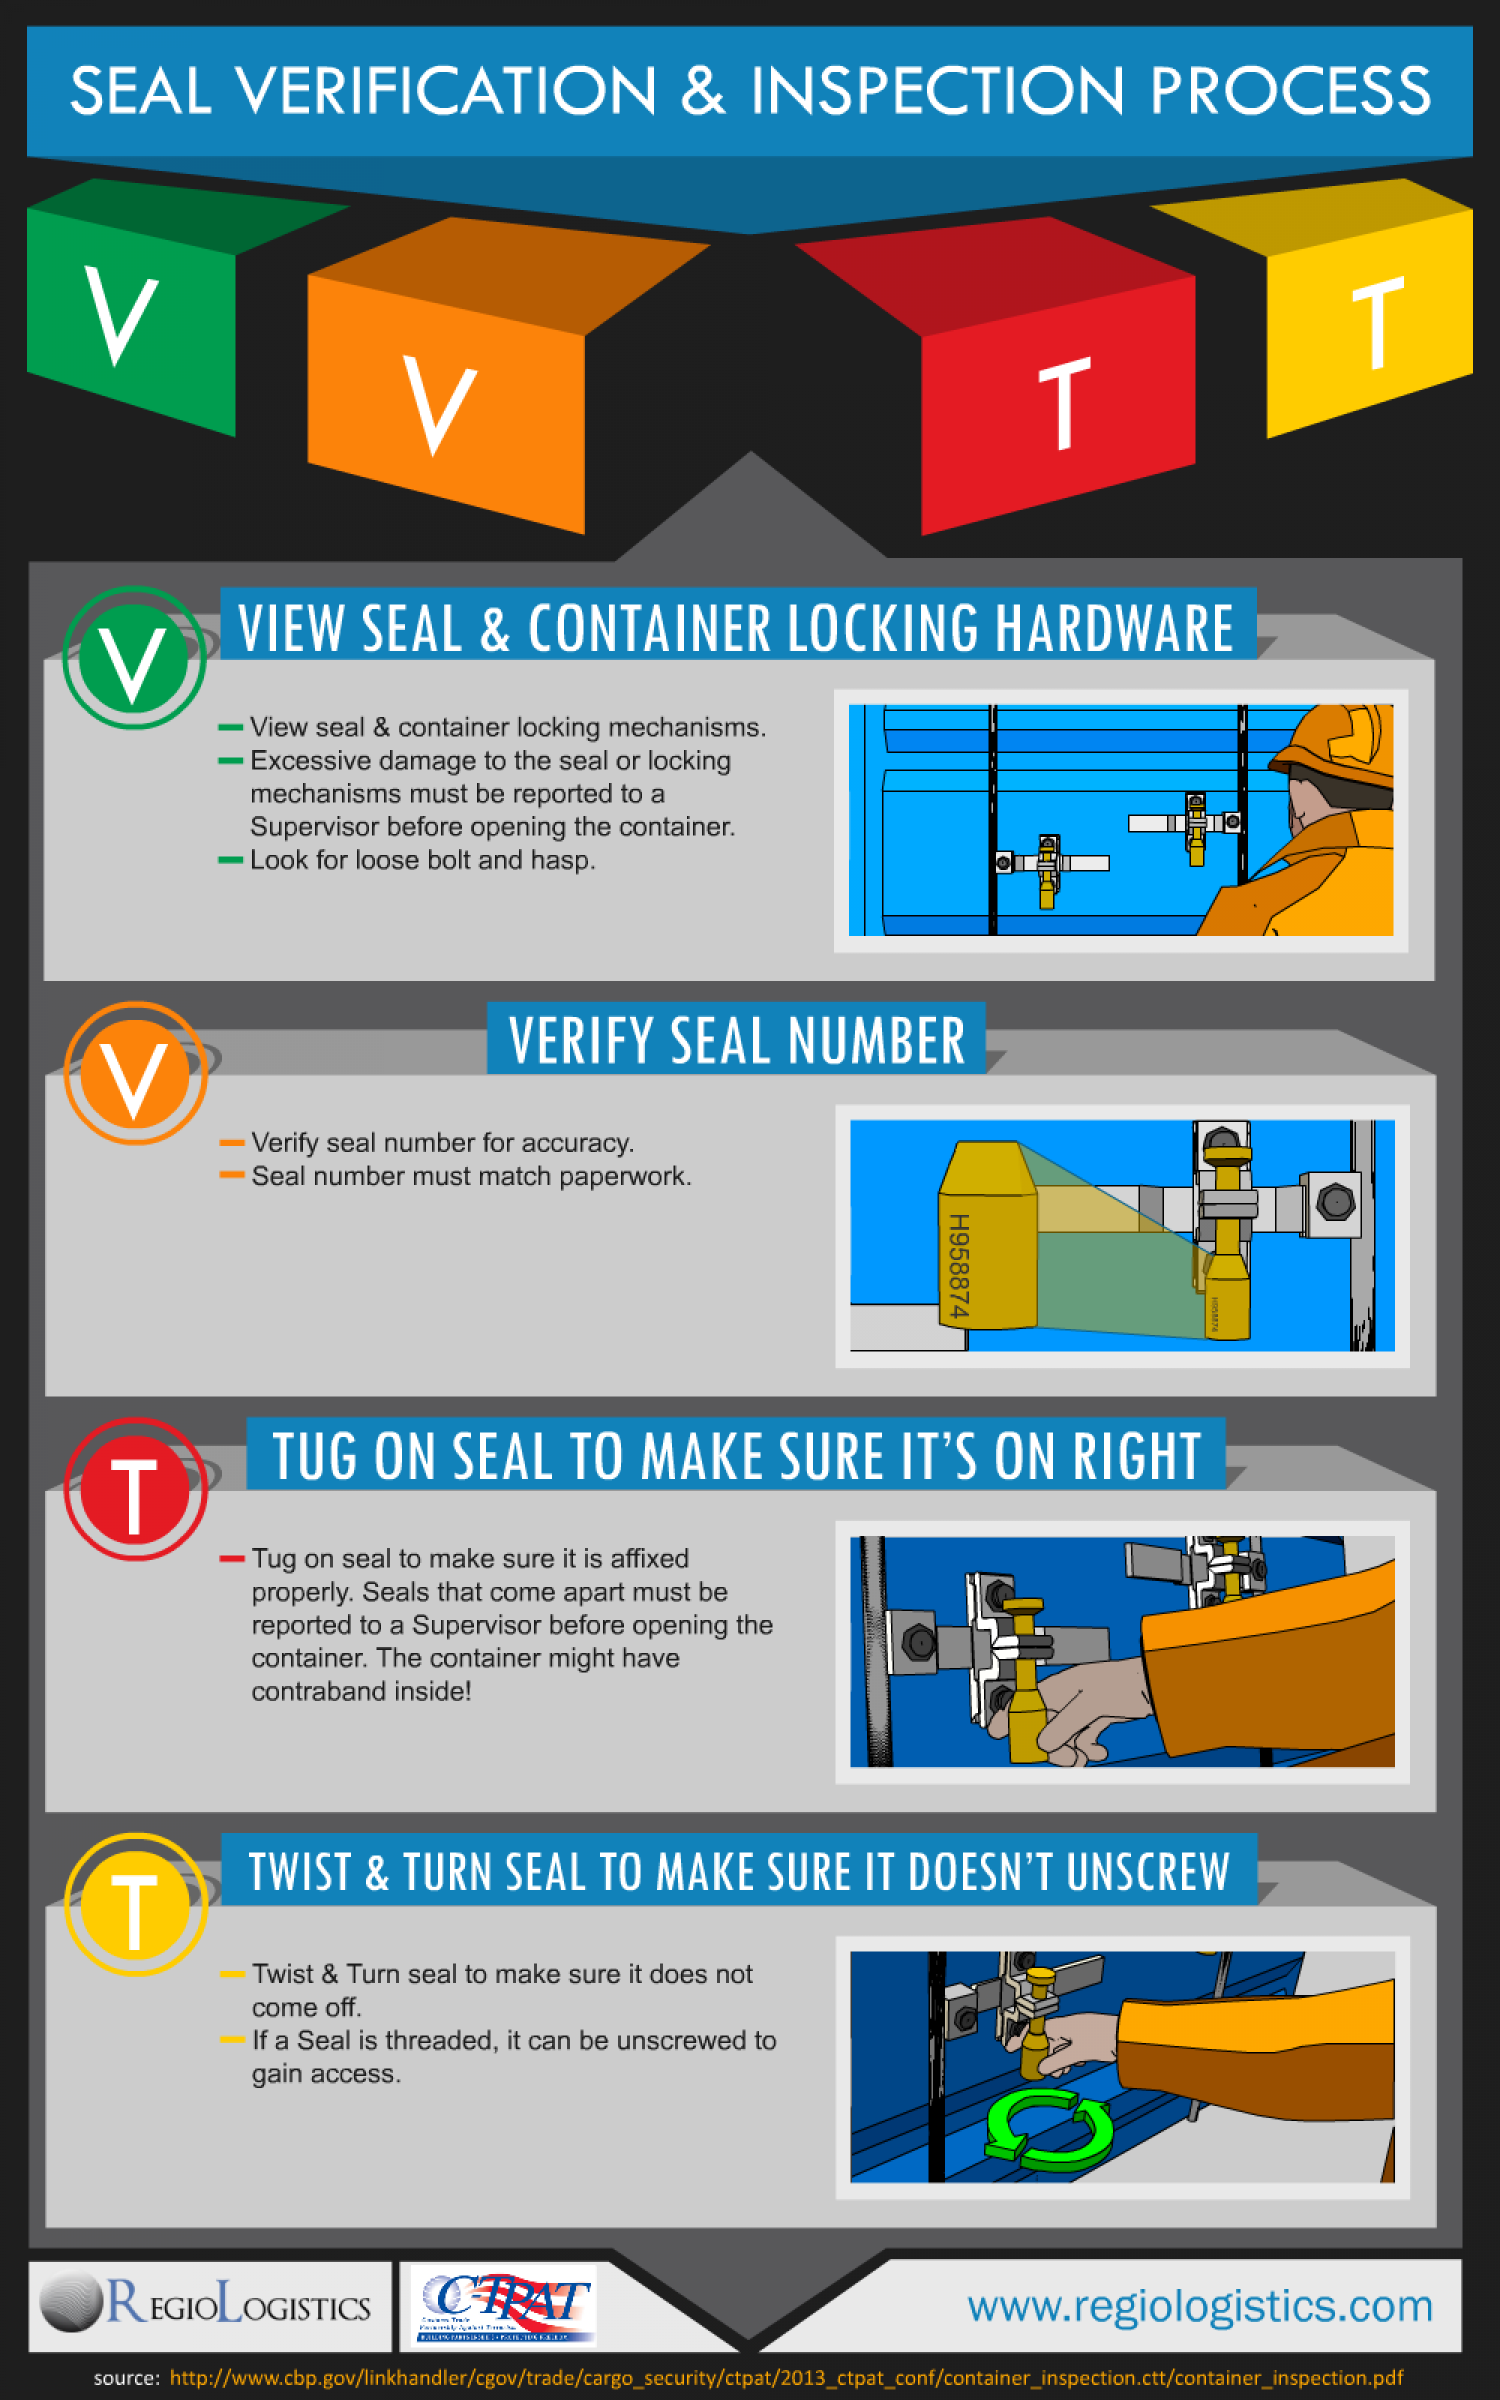 VVTT - Seal Verification & Inspection Process Infographic